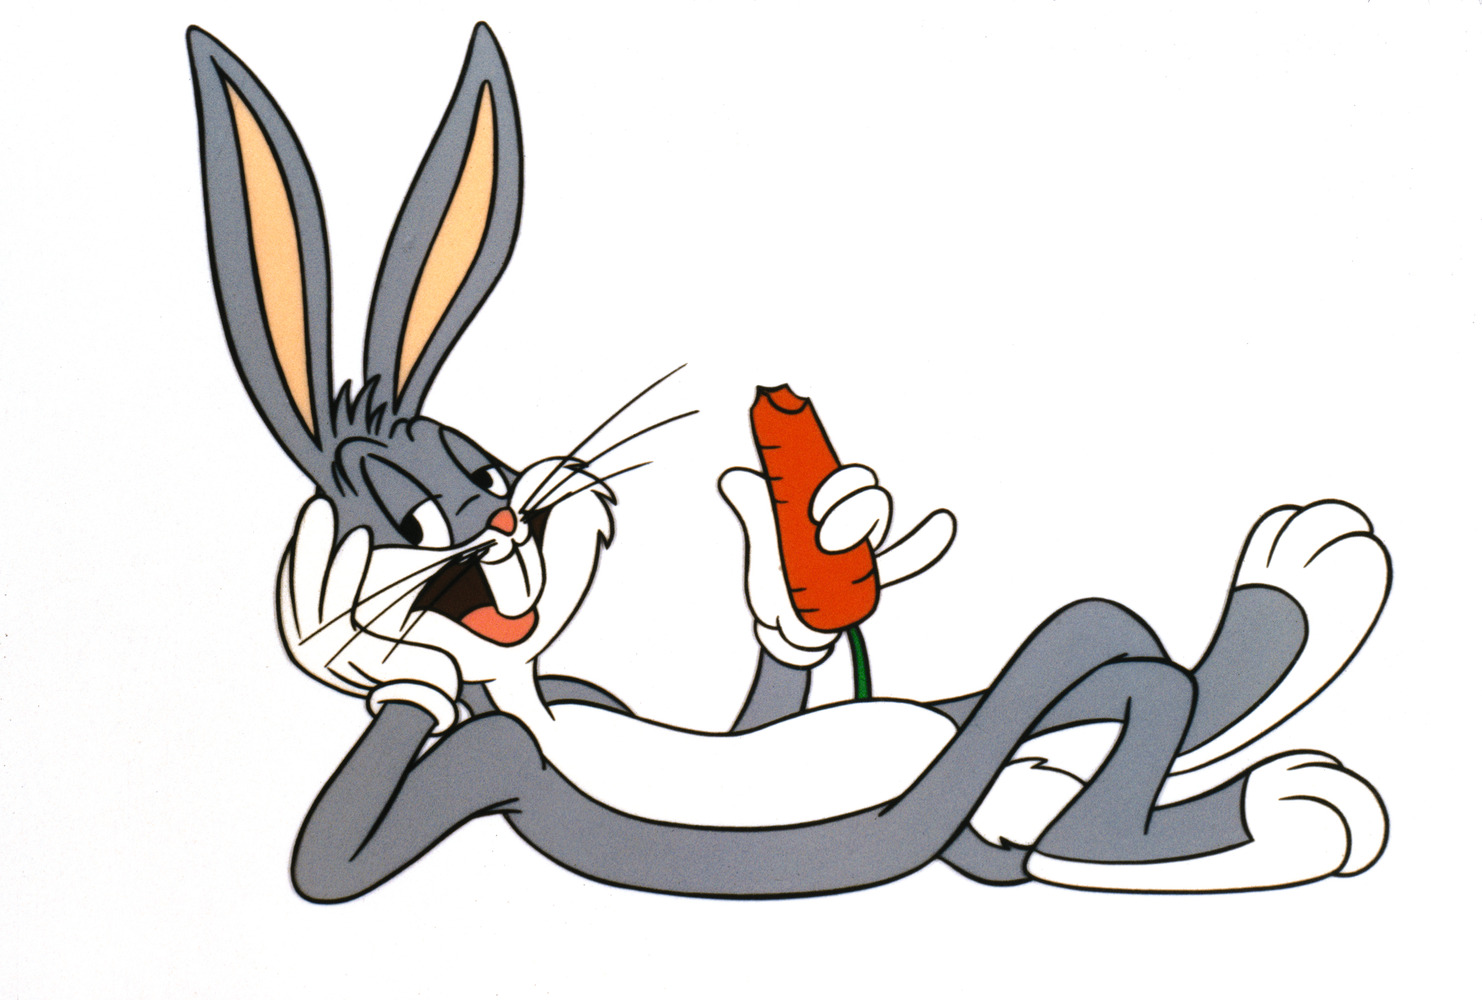 http://brianksigley.files.wordpress.com/2010/07/bugs-bunny.jpg